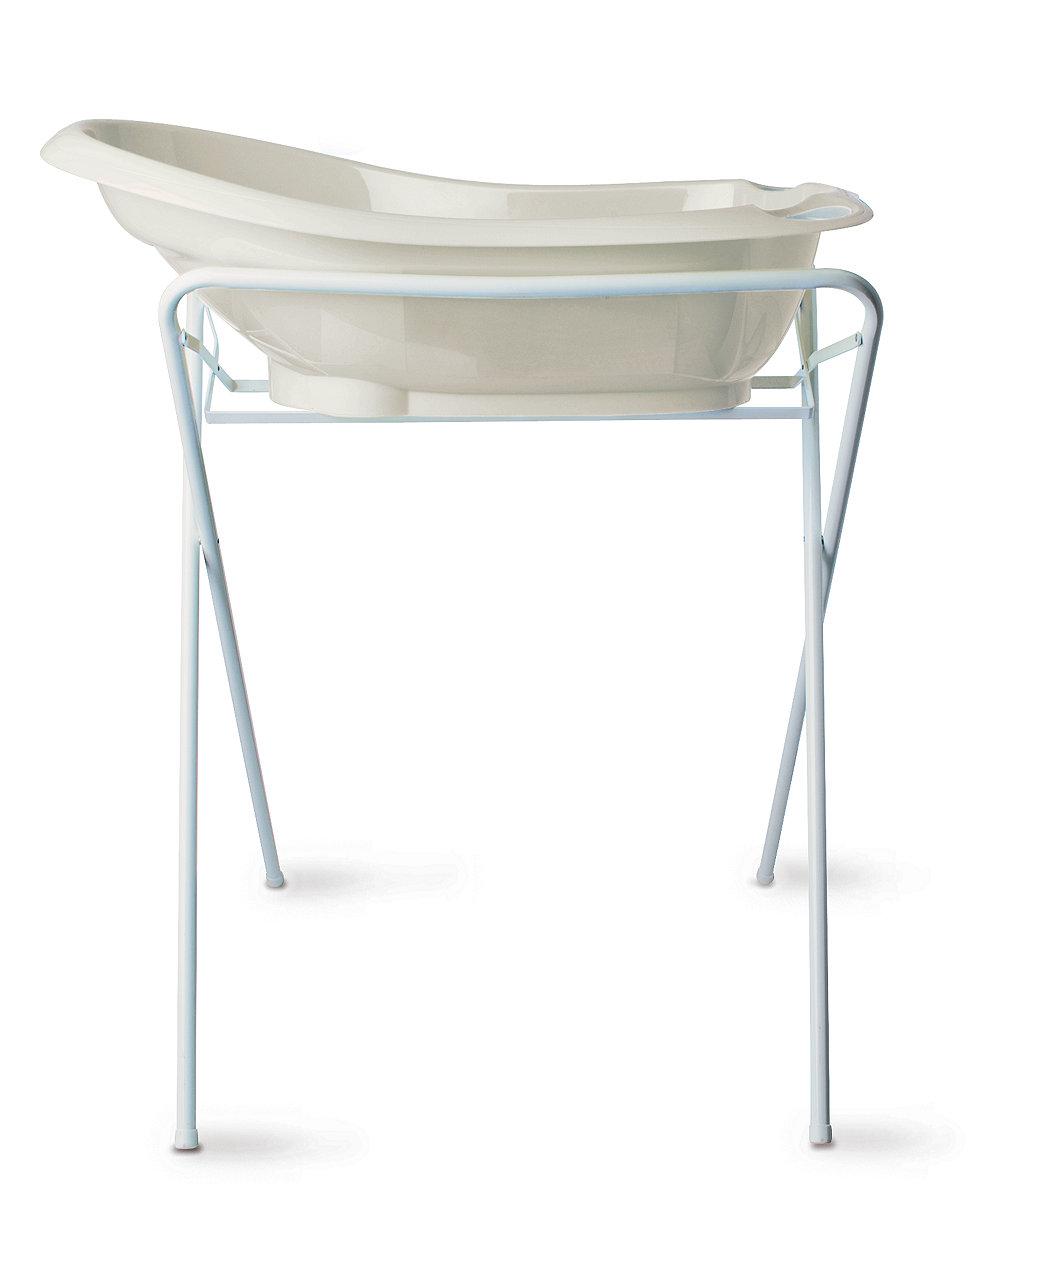 Mothercare Folding Baby Bath Stand